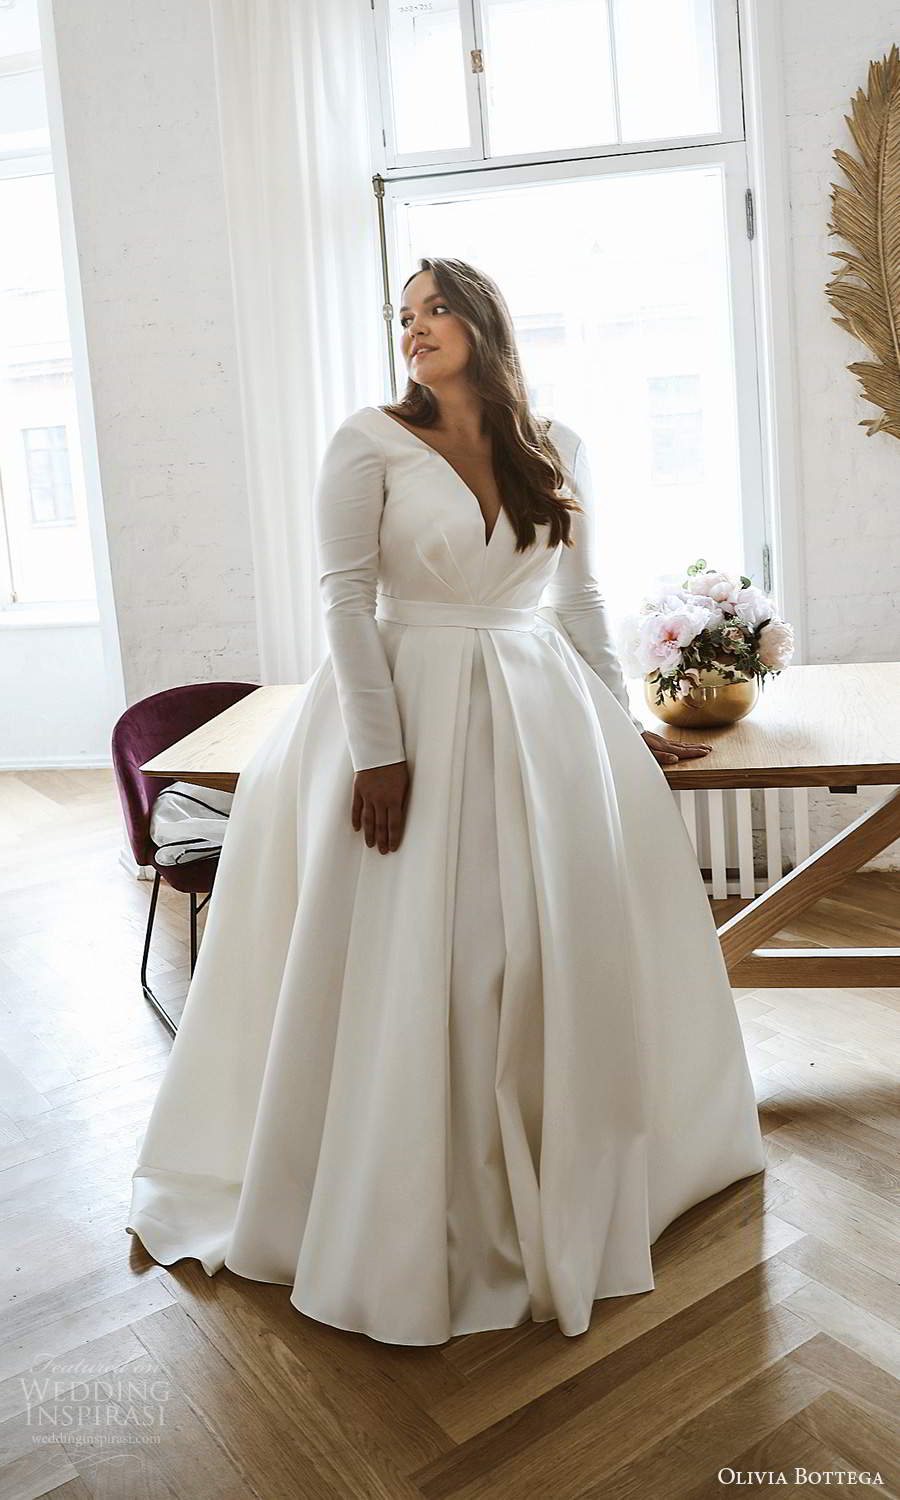 olivia bottega 2021 bridal plus long sleeves plunging v neckline clean minimalist a line ball gown wedding dress sweep train (1) mv